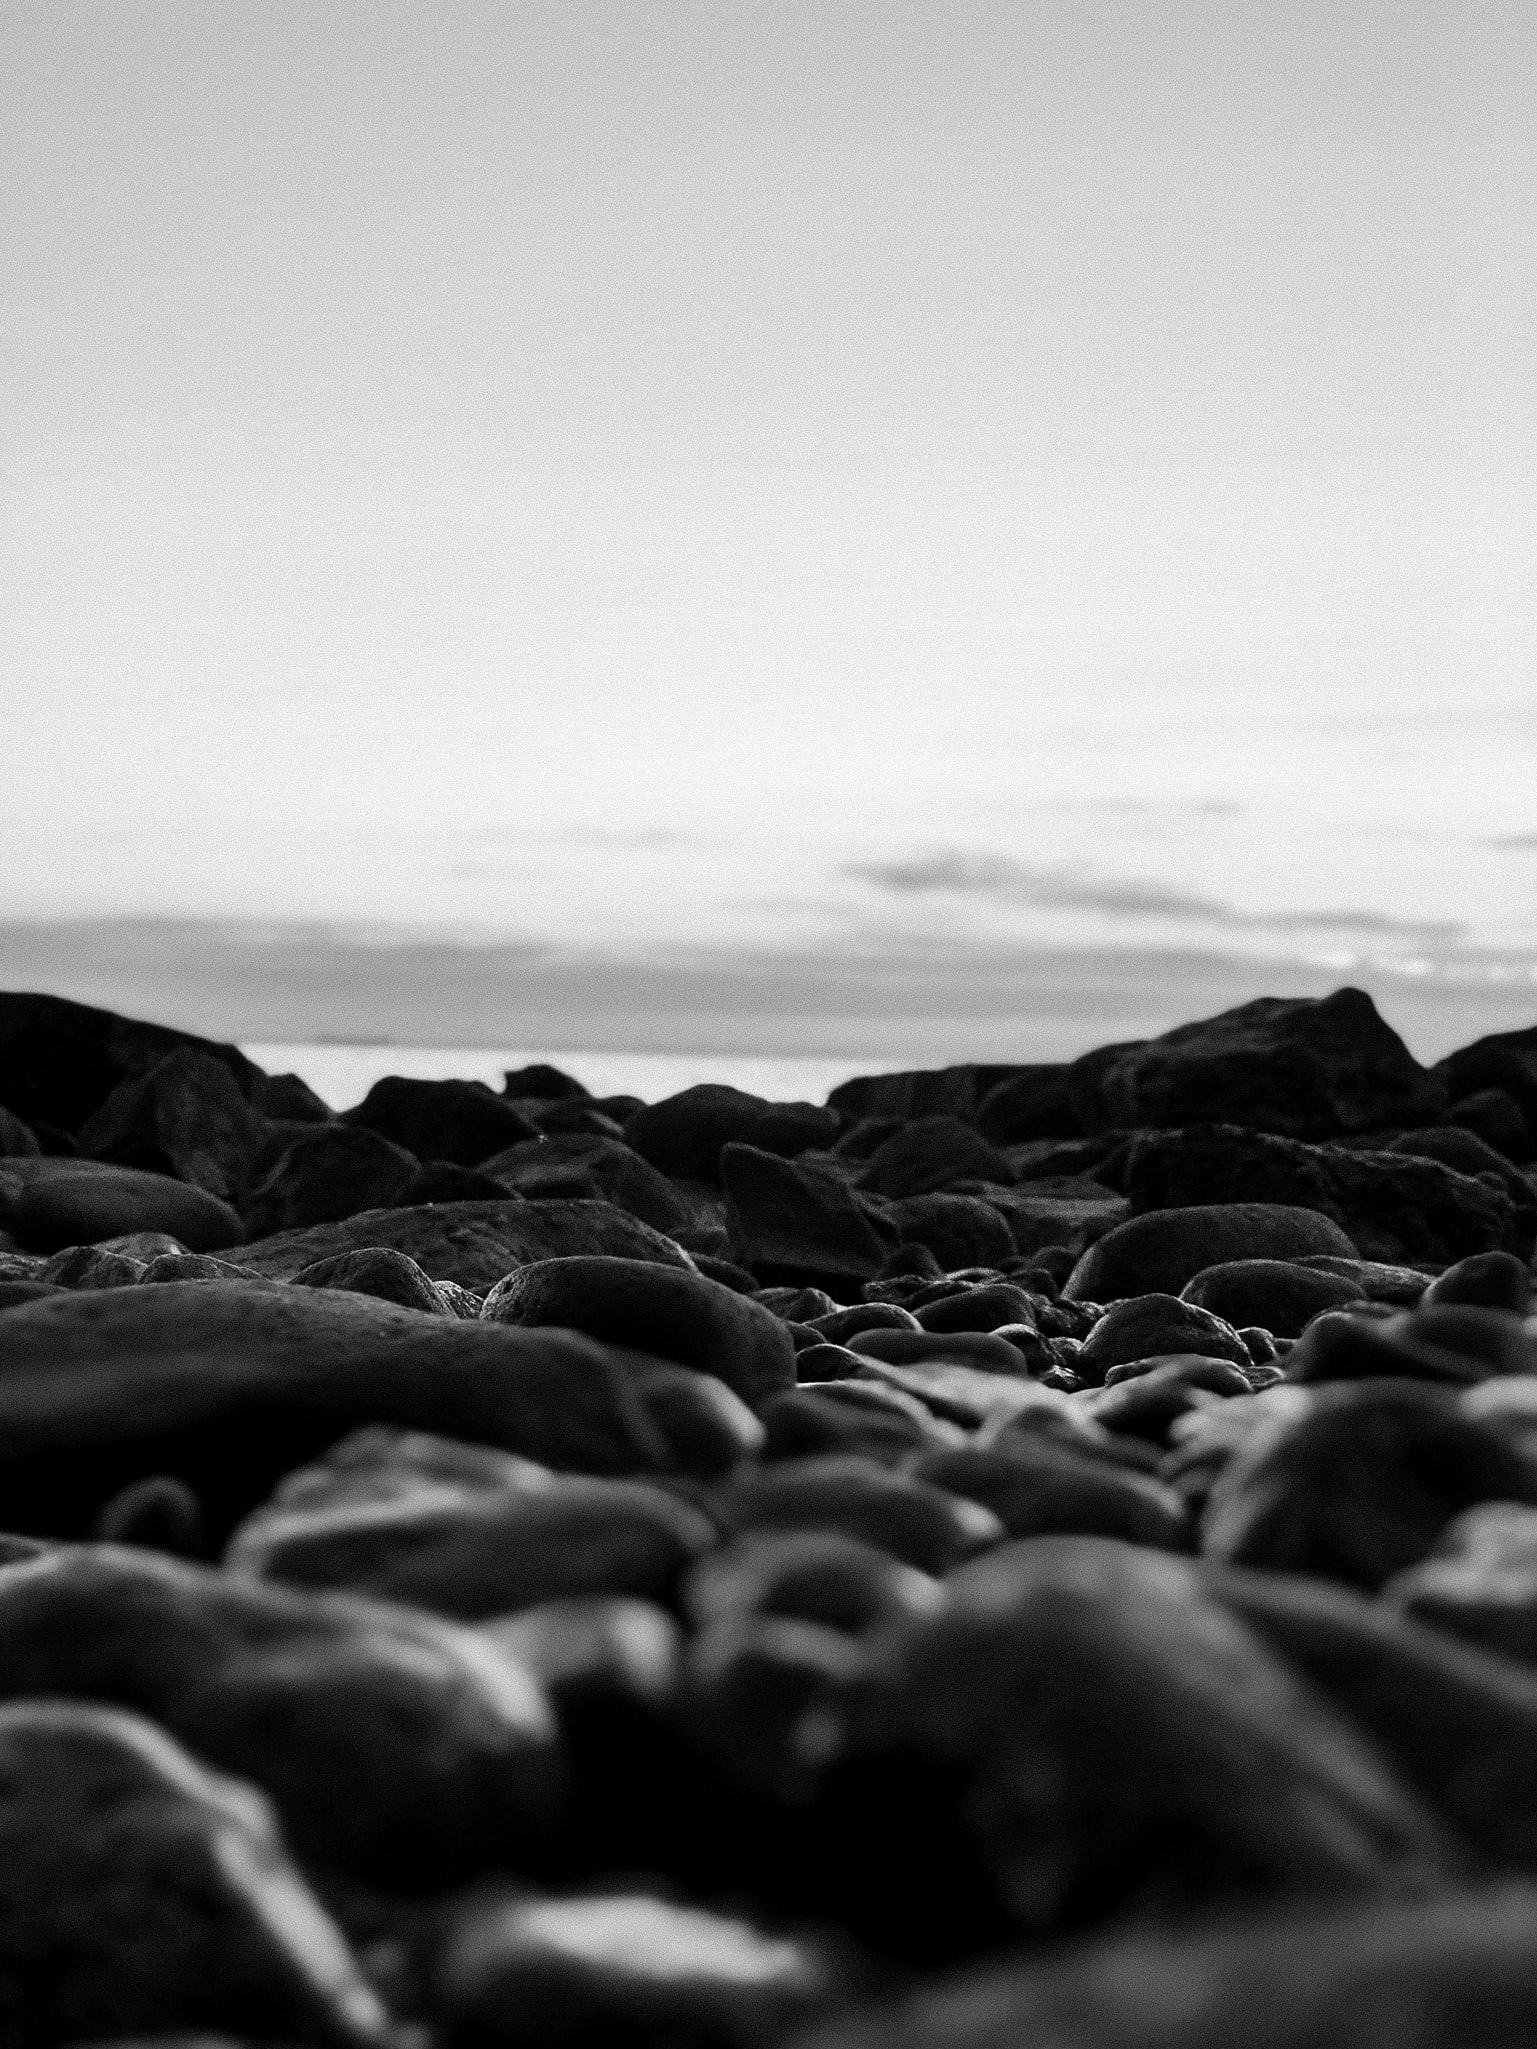 grayscale photography of stones